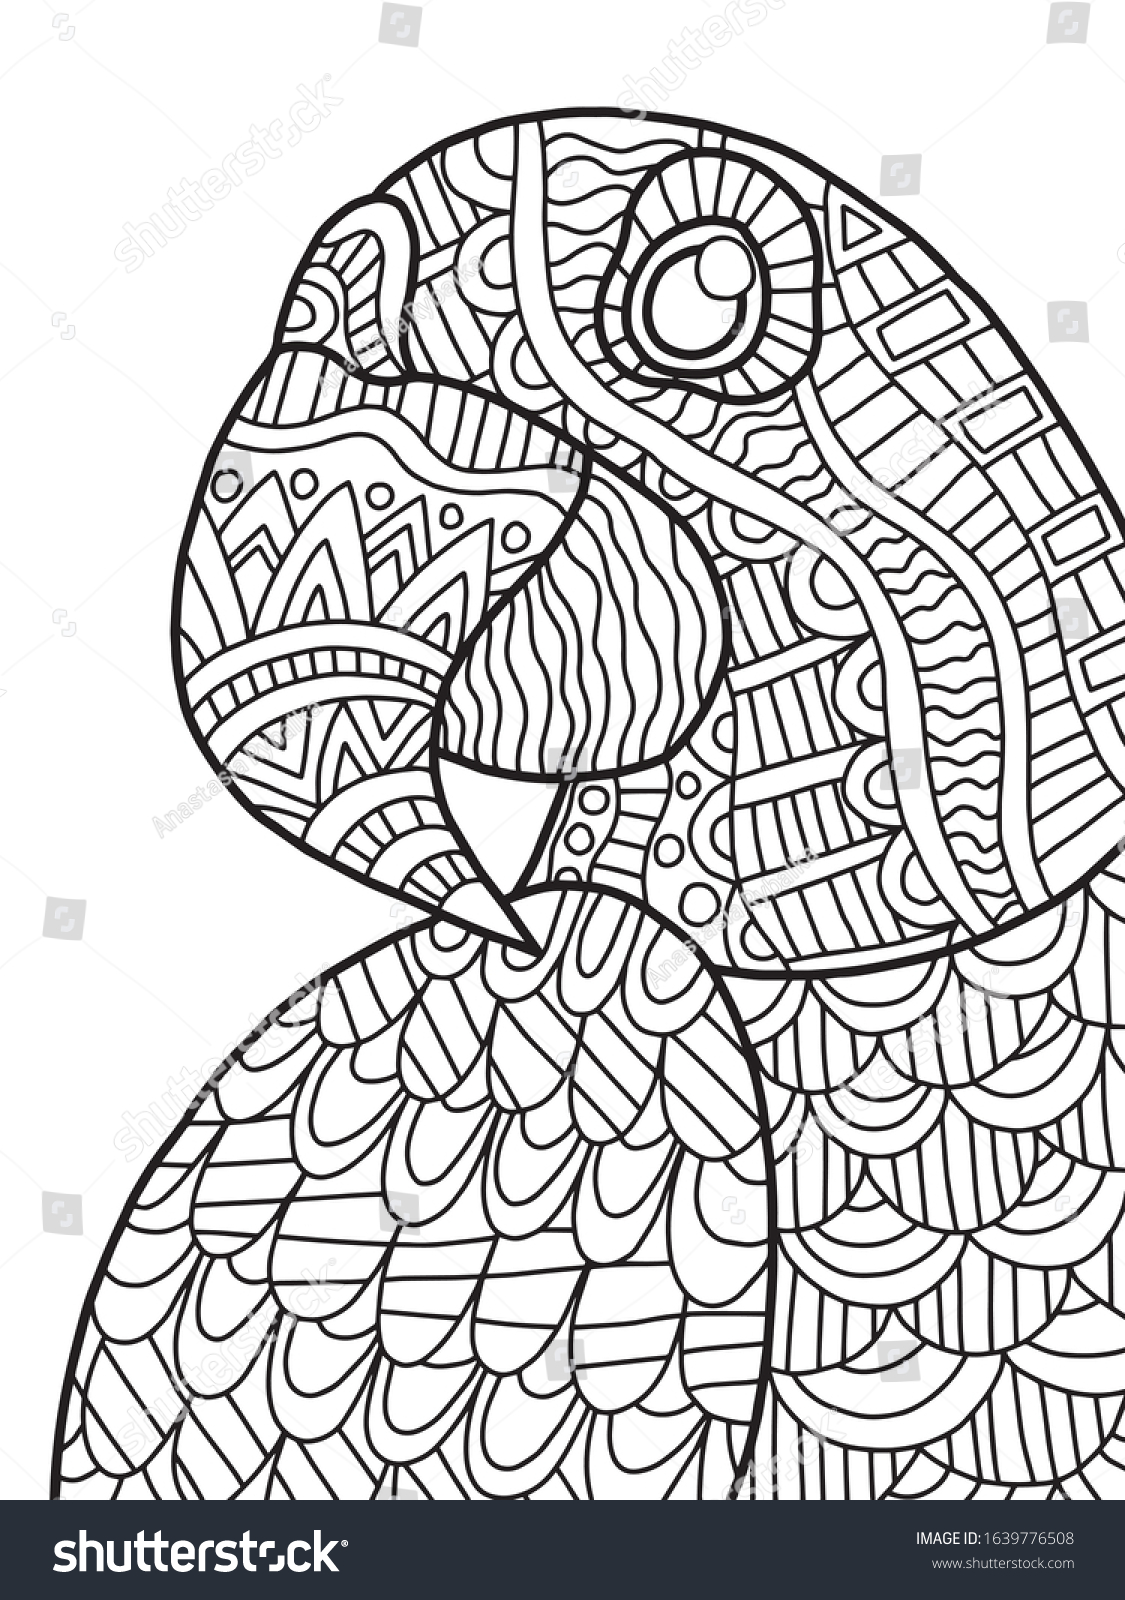 Blue Macaw Portrait Coloring Page Kids Stock Vector Royalty Free 1639776508